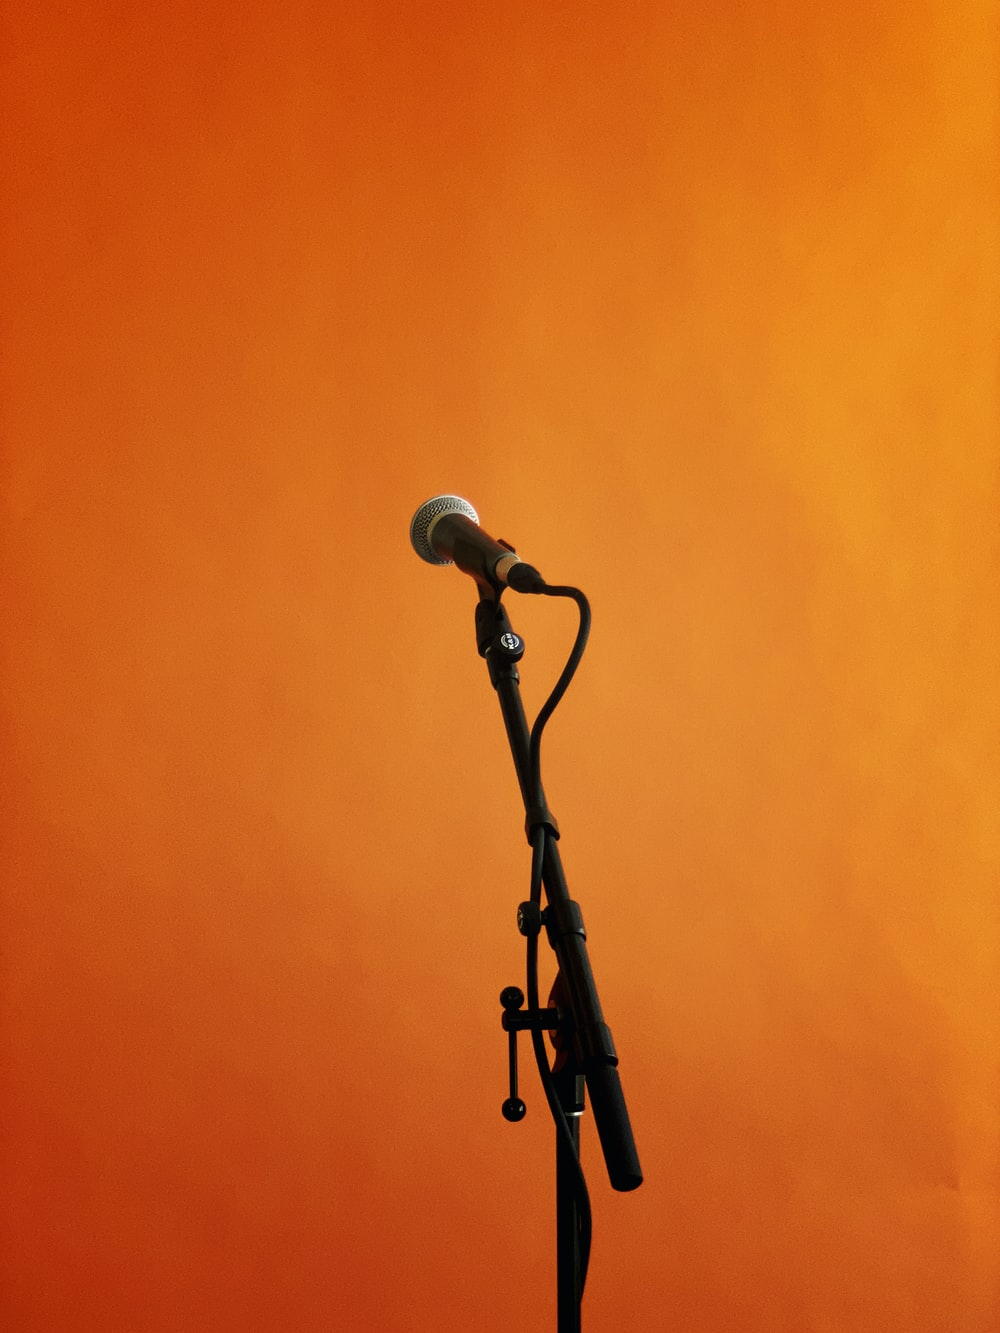 black and gray microphone with stand